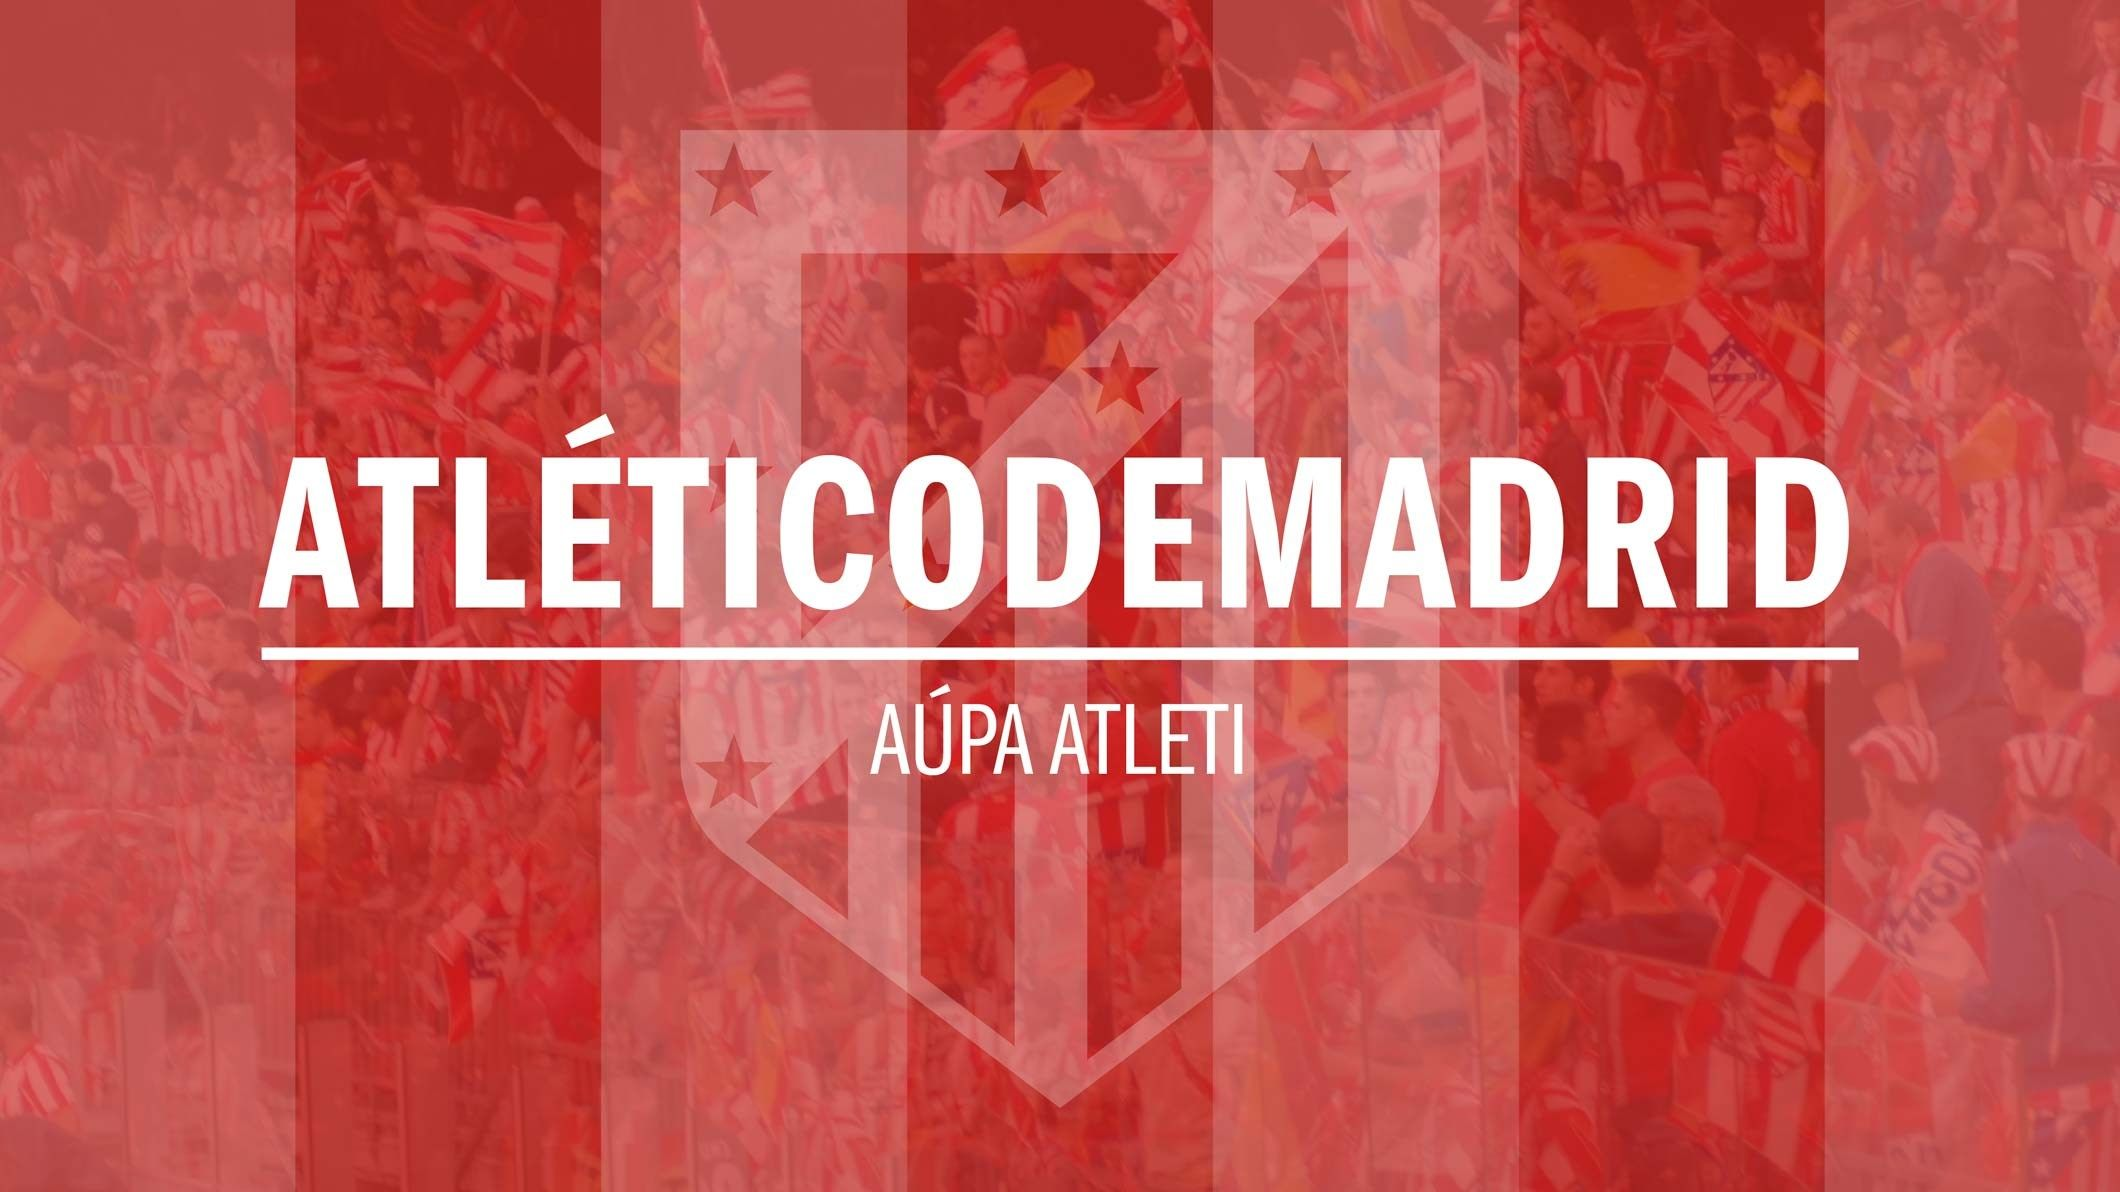 Hd atletico madrid wallpapers atltico de madrid pinterest madrid hd atletico madrid wallpapers voltagebd Image collections